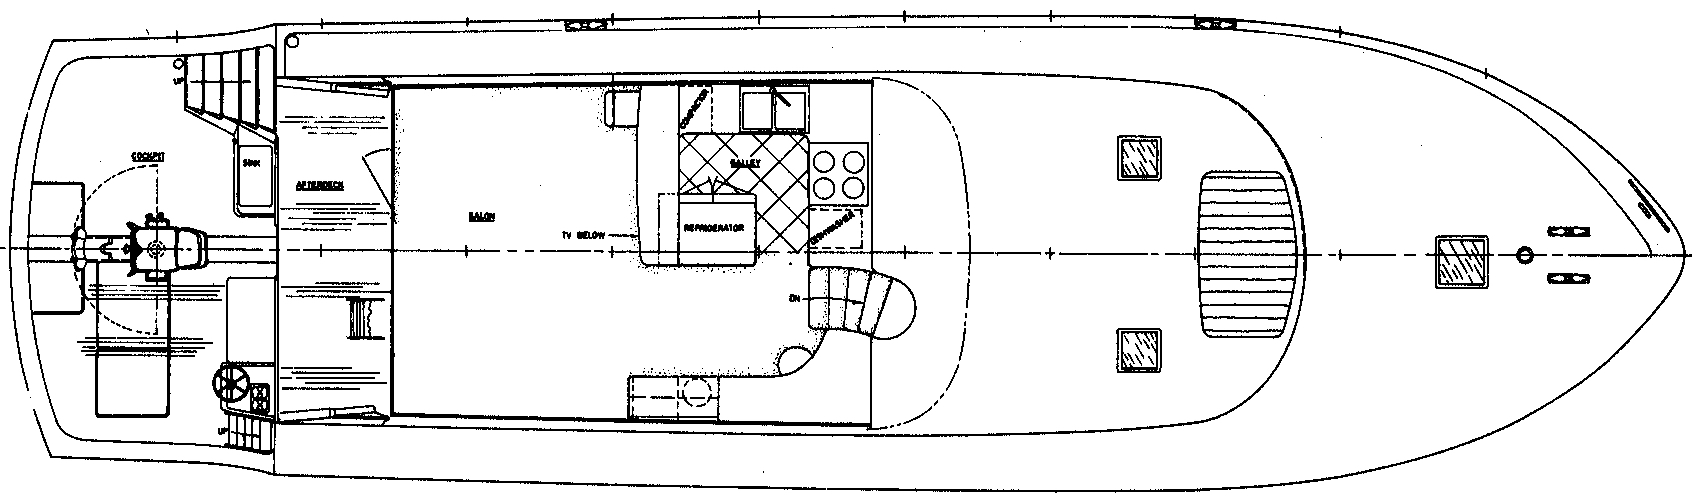 66 Sport Yacht Floor Plan 2